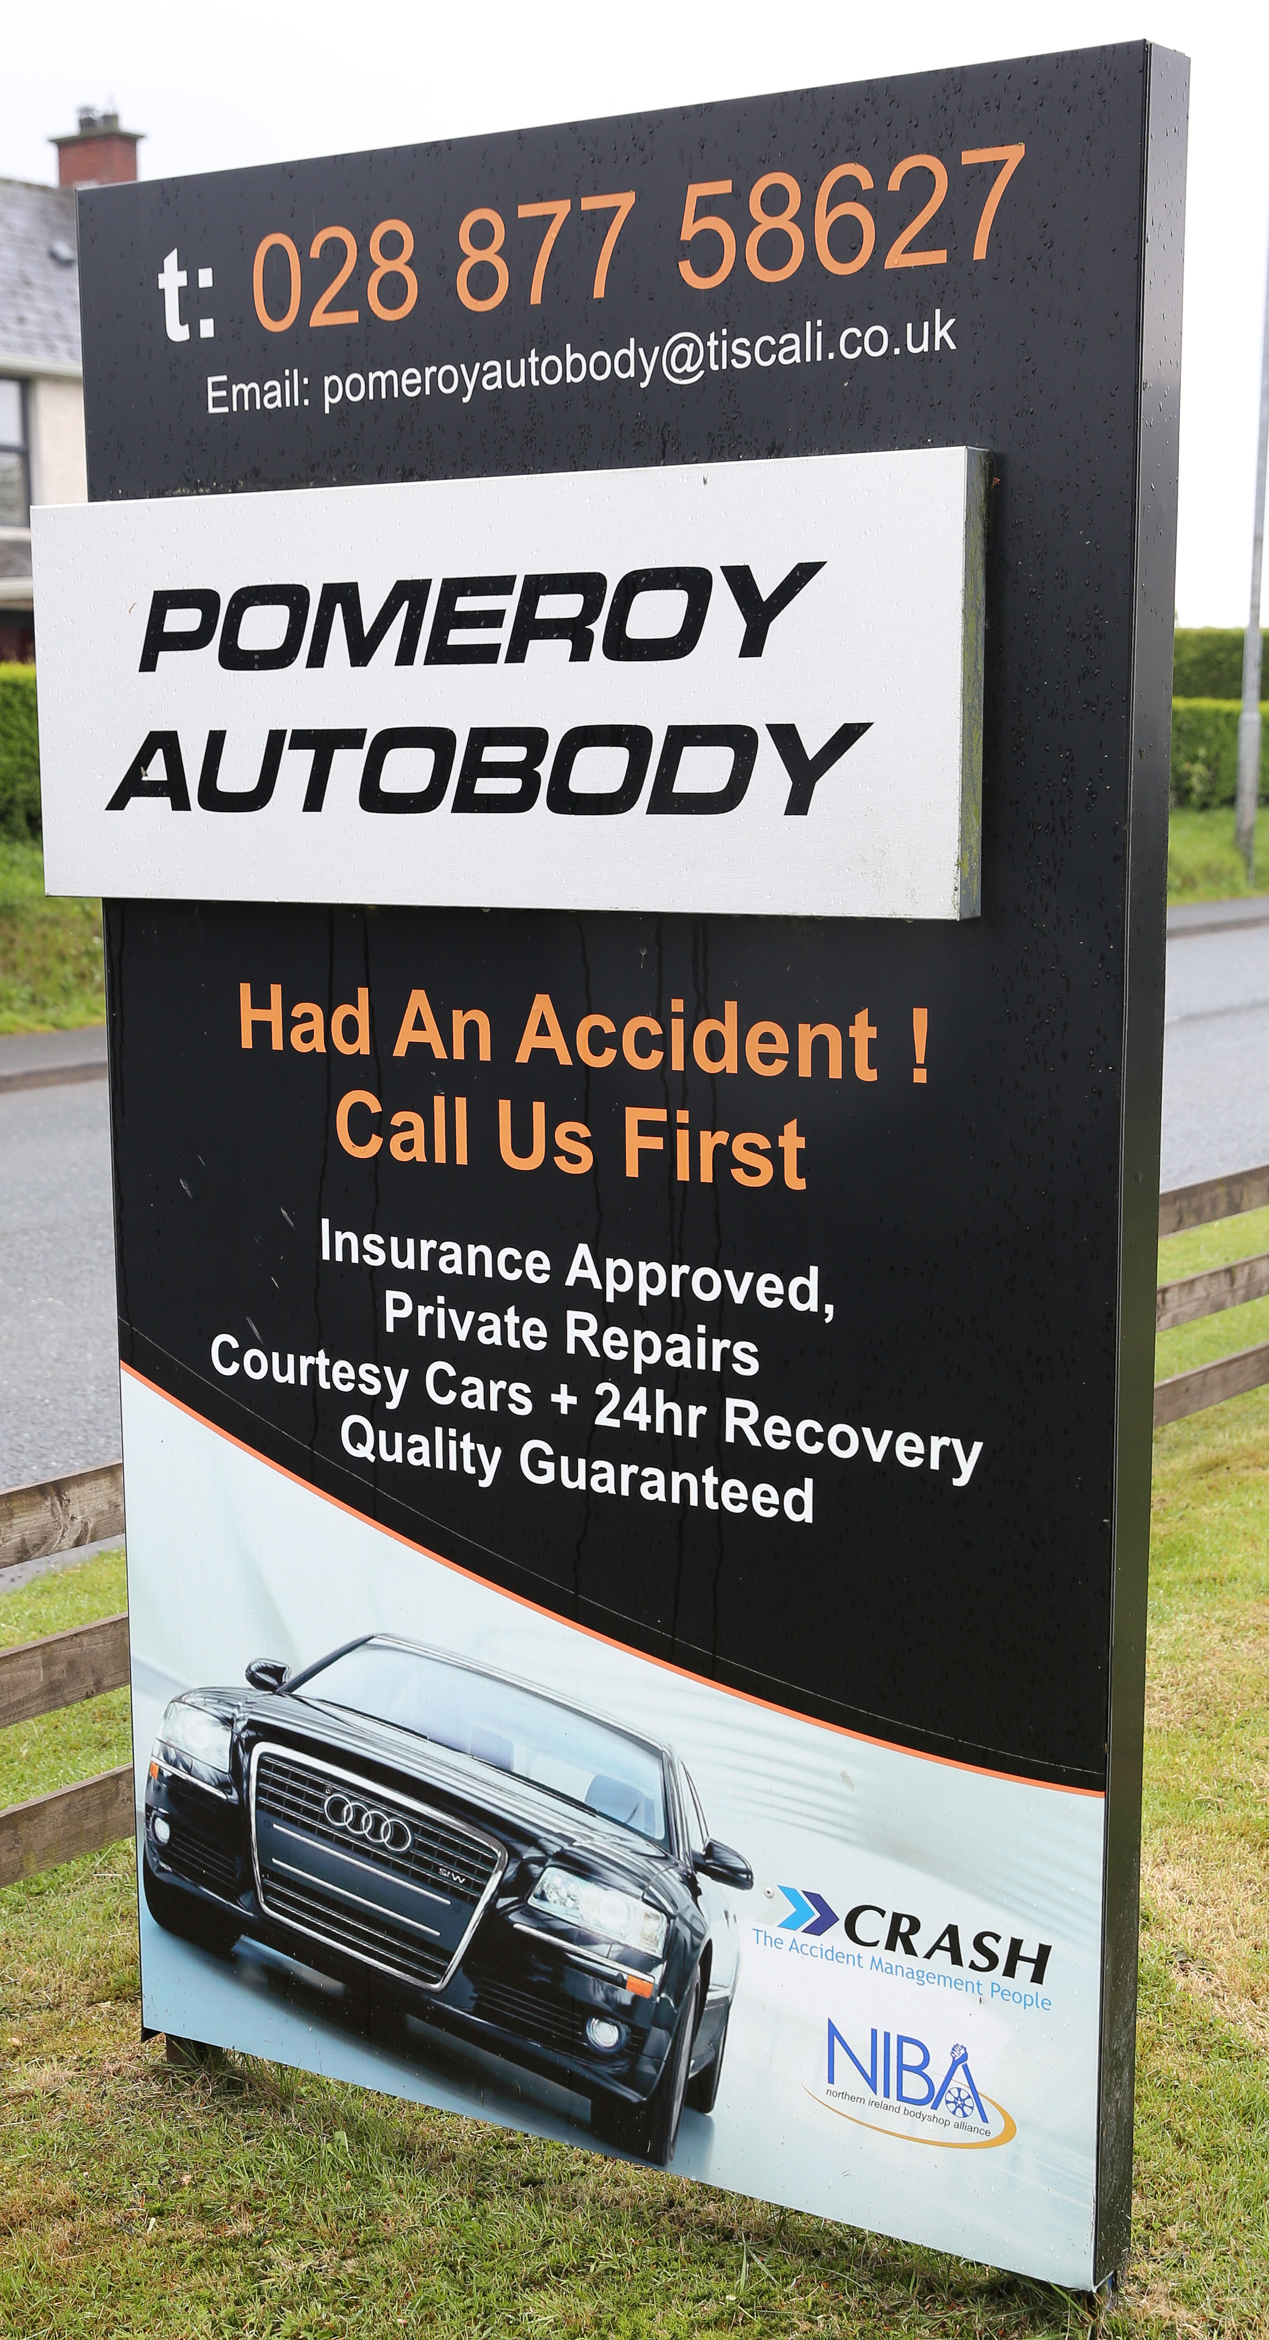 pomery autobody billboard